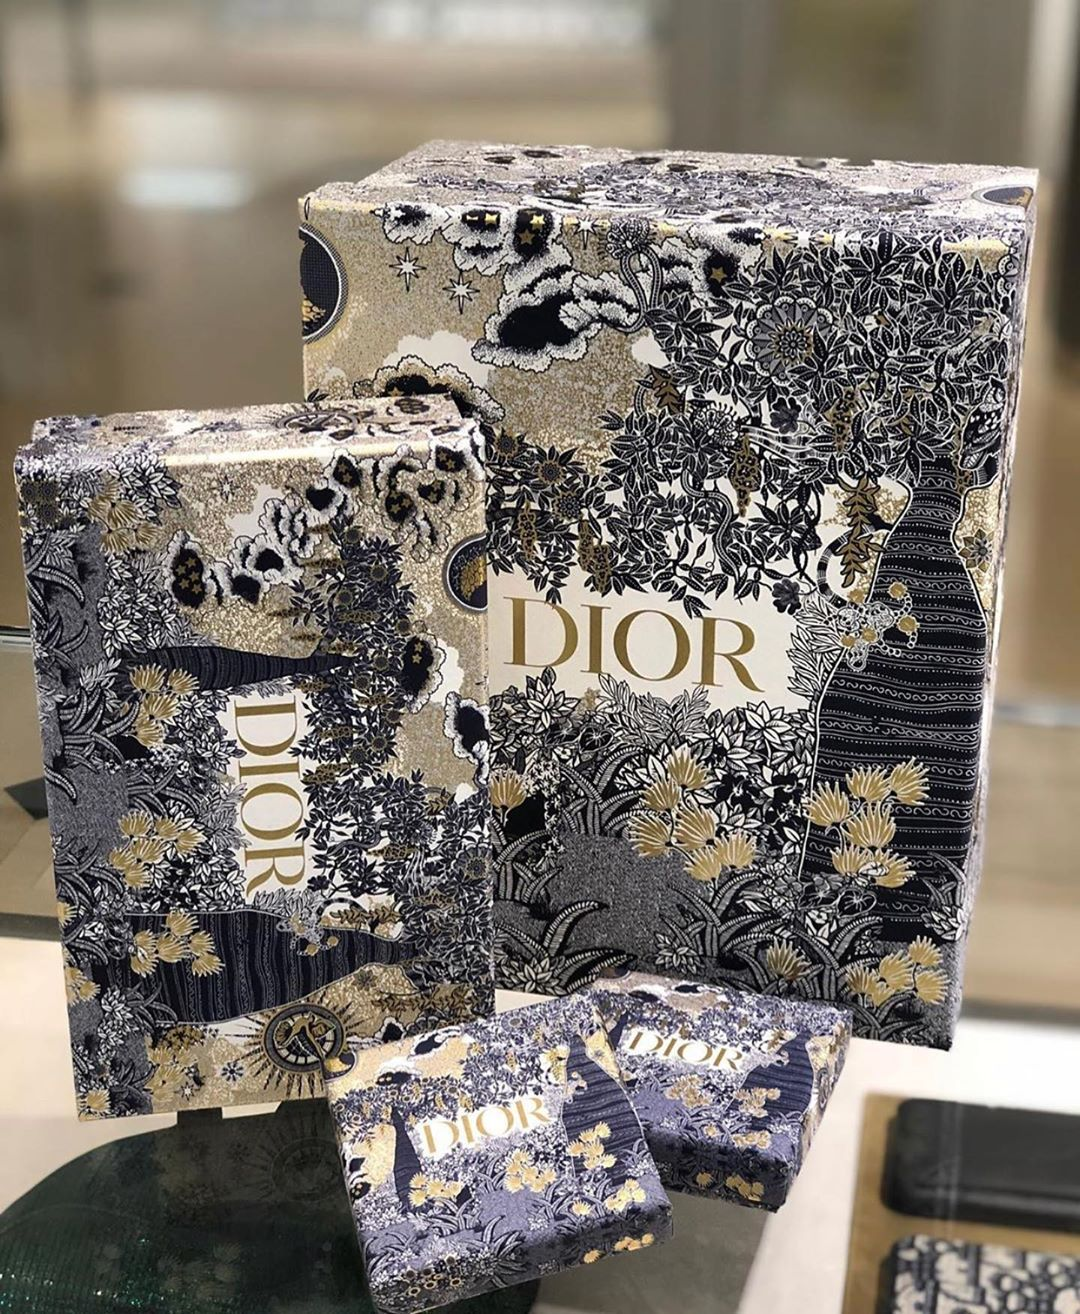 Dior Christmas Box 2020 Pin on Luxe Fashion